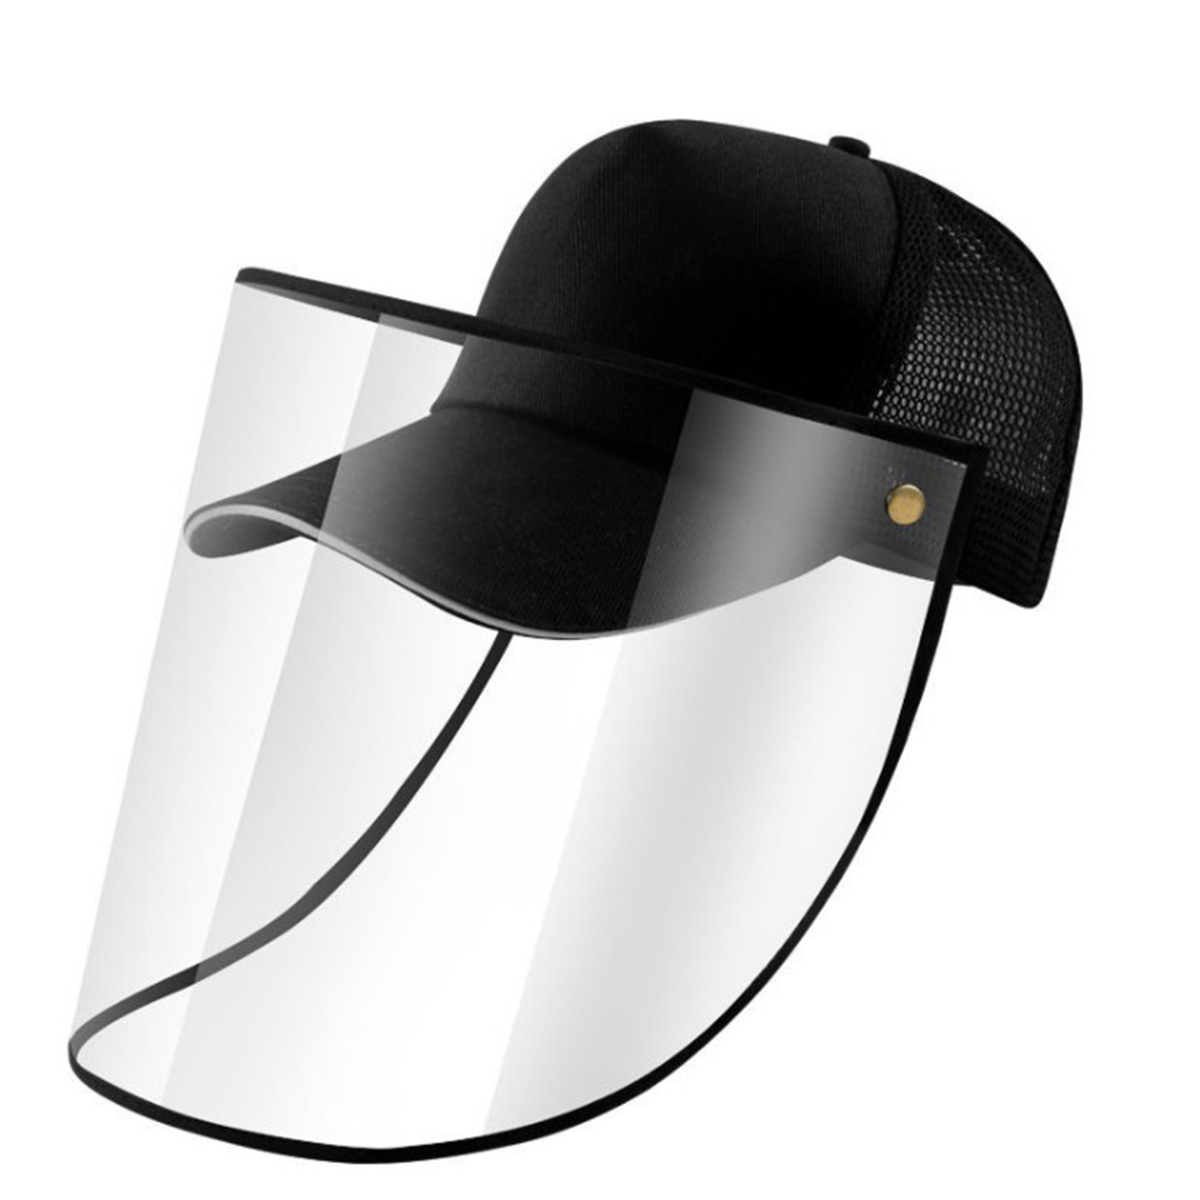 Anti-spray Detachable Face Shield Protective Peaked Cap Fashion Solid Color Eye Protection Baseball Hat